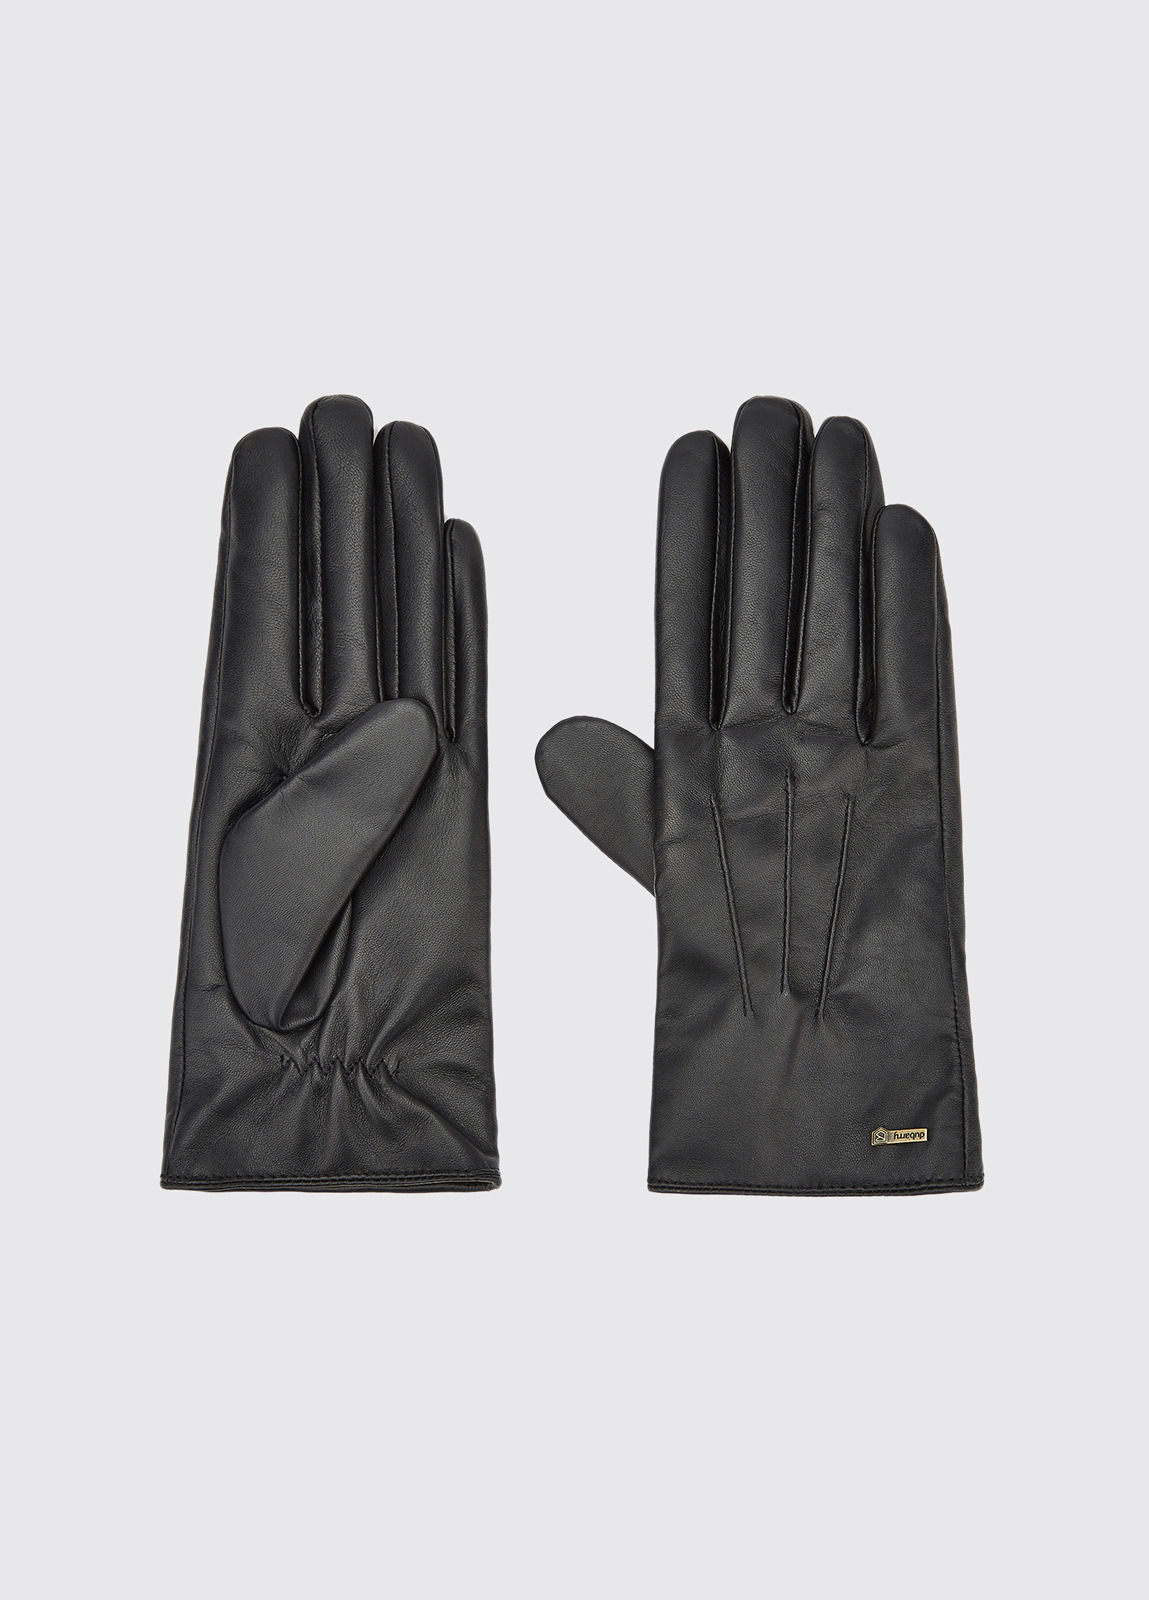 Sheehan Leather Gloves - Black